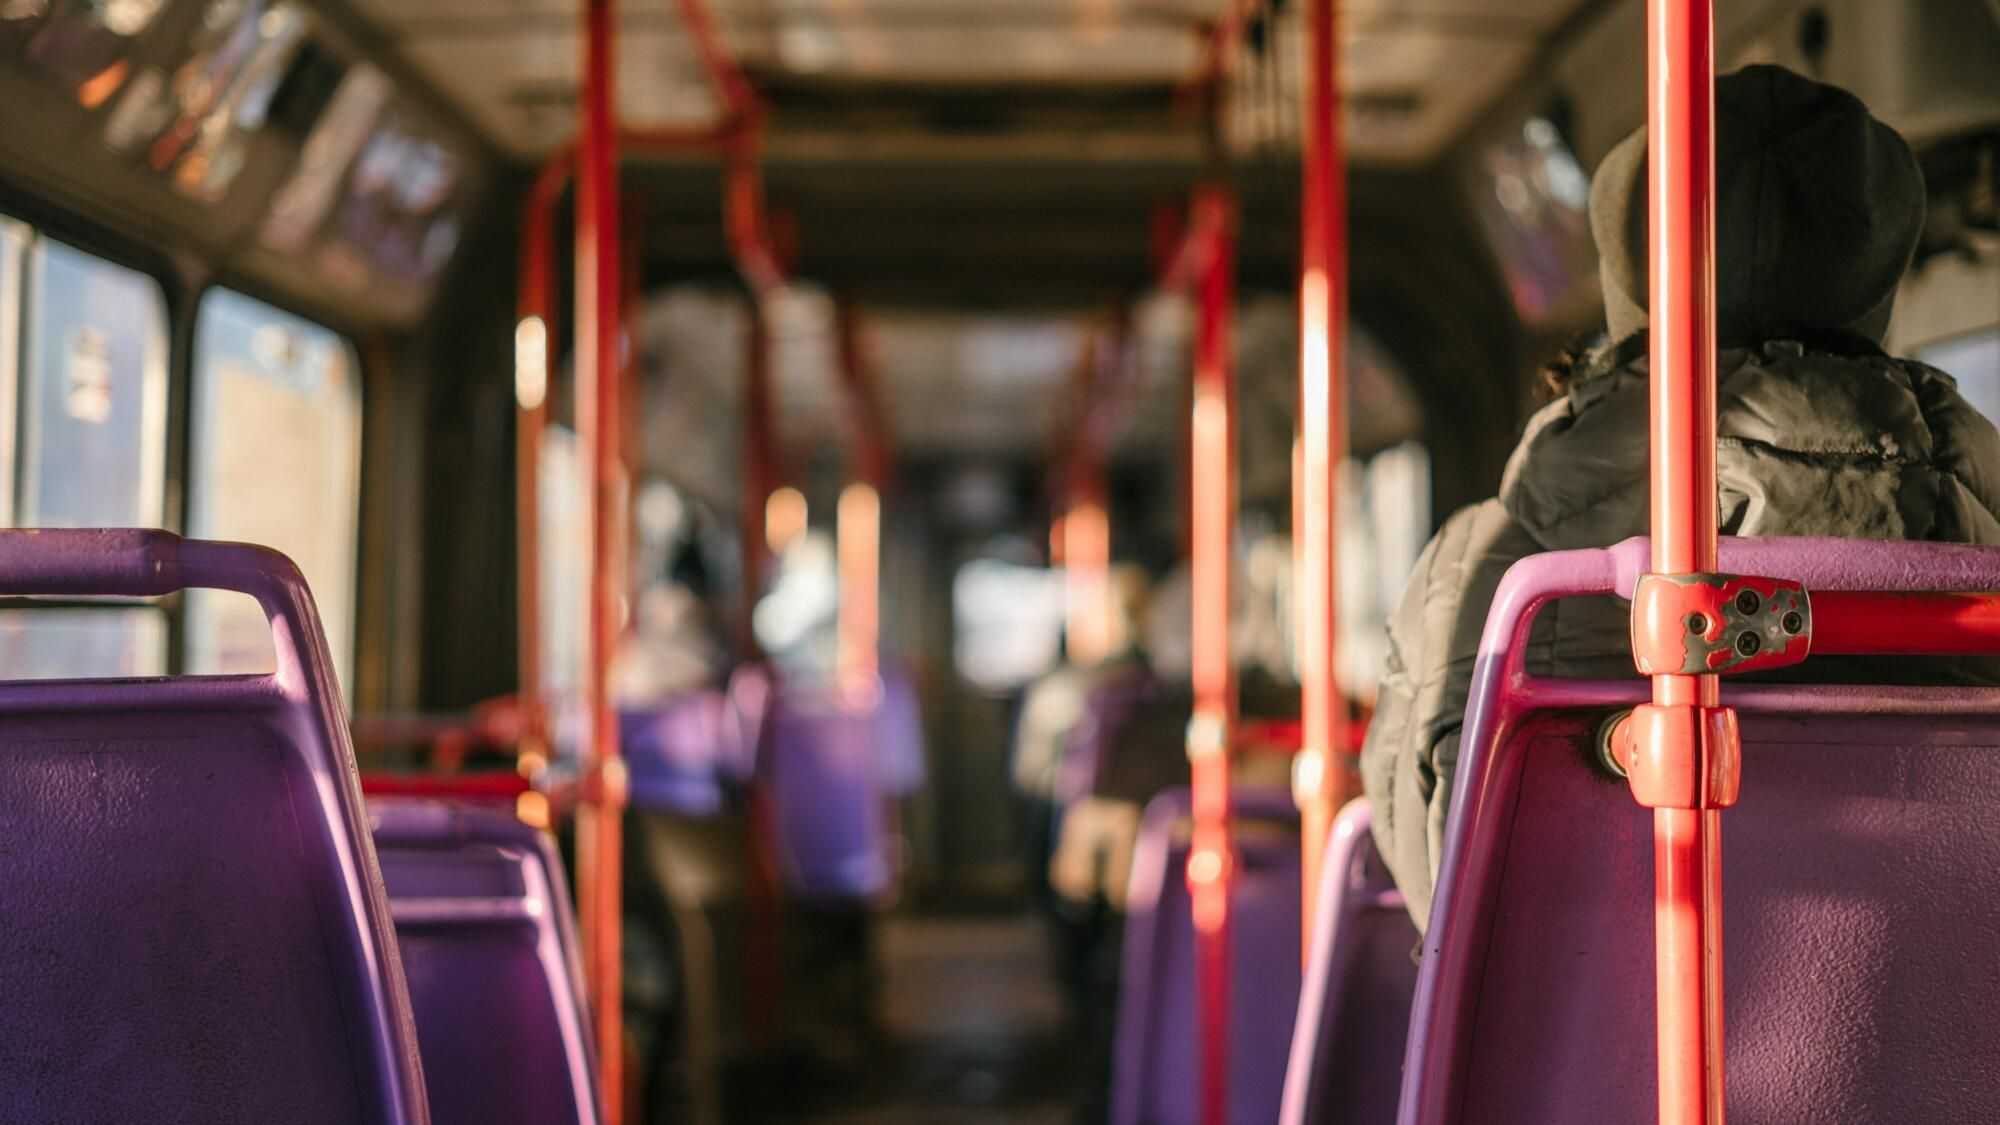 Joint letter: More support is needed for clean bus infrastructure